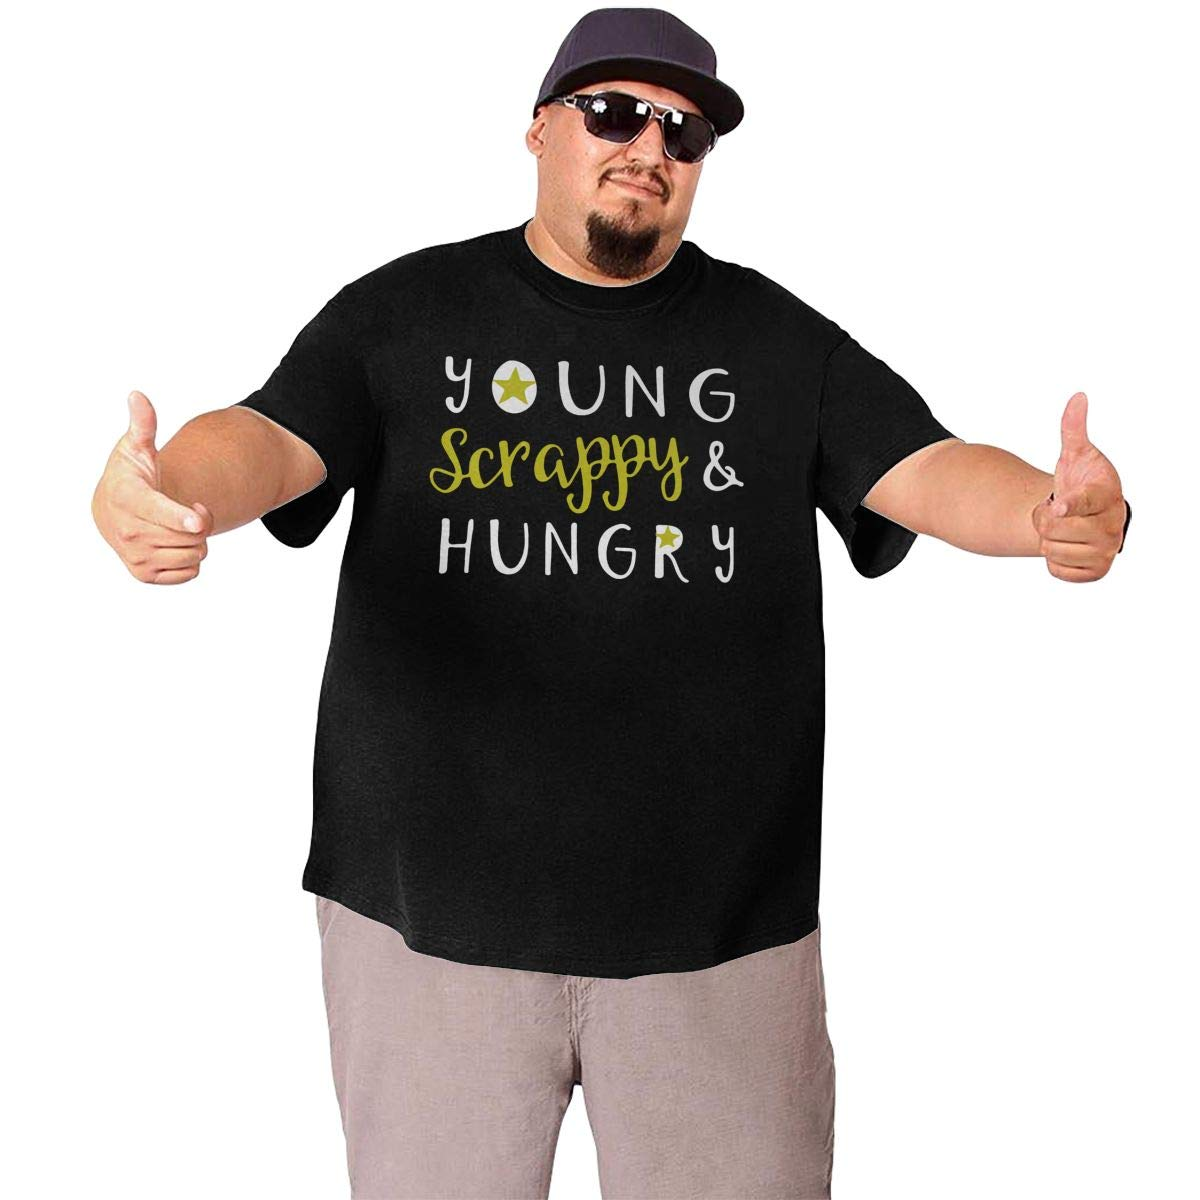 Fashion Tops Tee for Fatty Mens Big Size Young Scrappy and Hungry Round Neck Short-Sleeve T Shirts XL-6XL